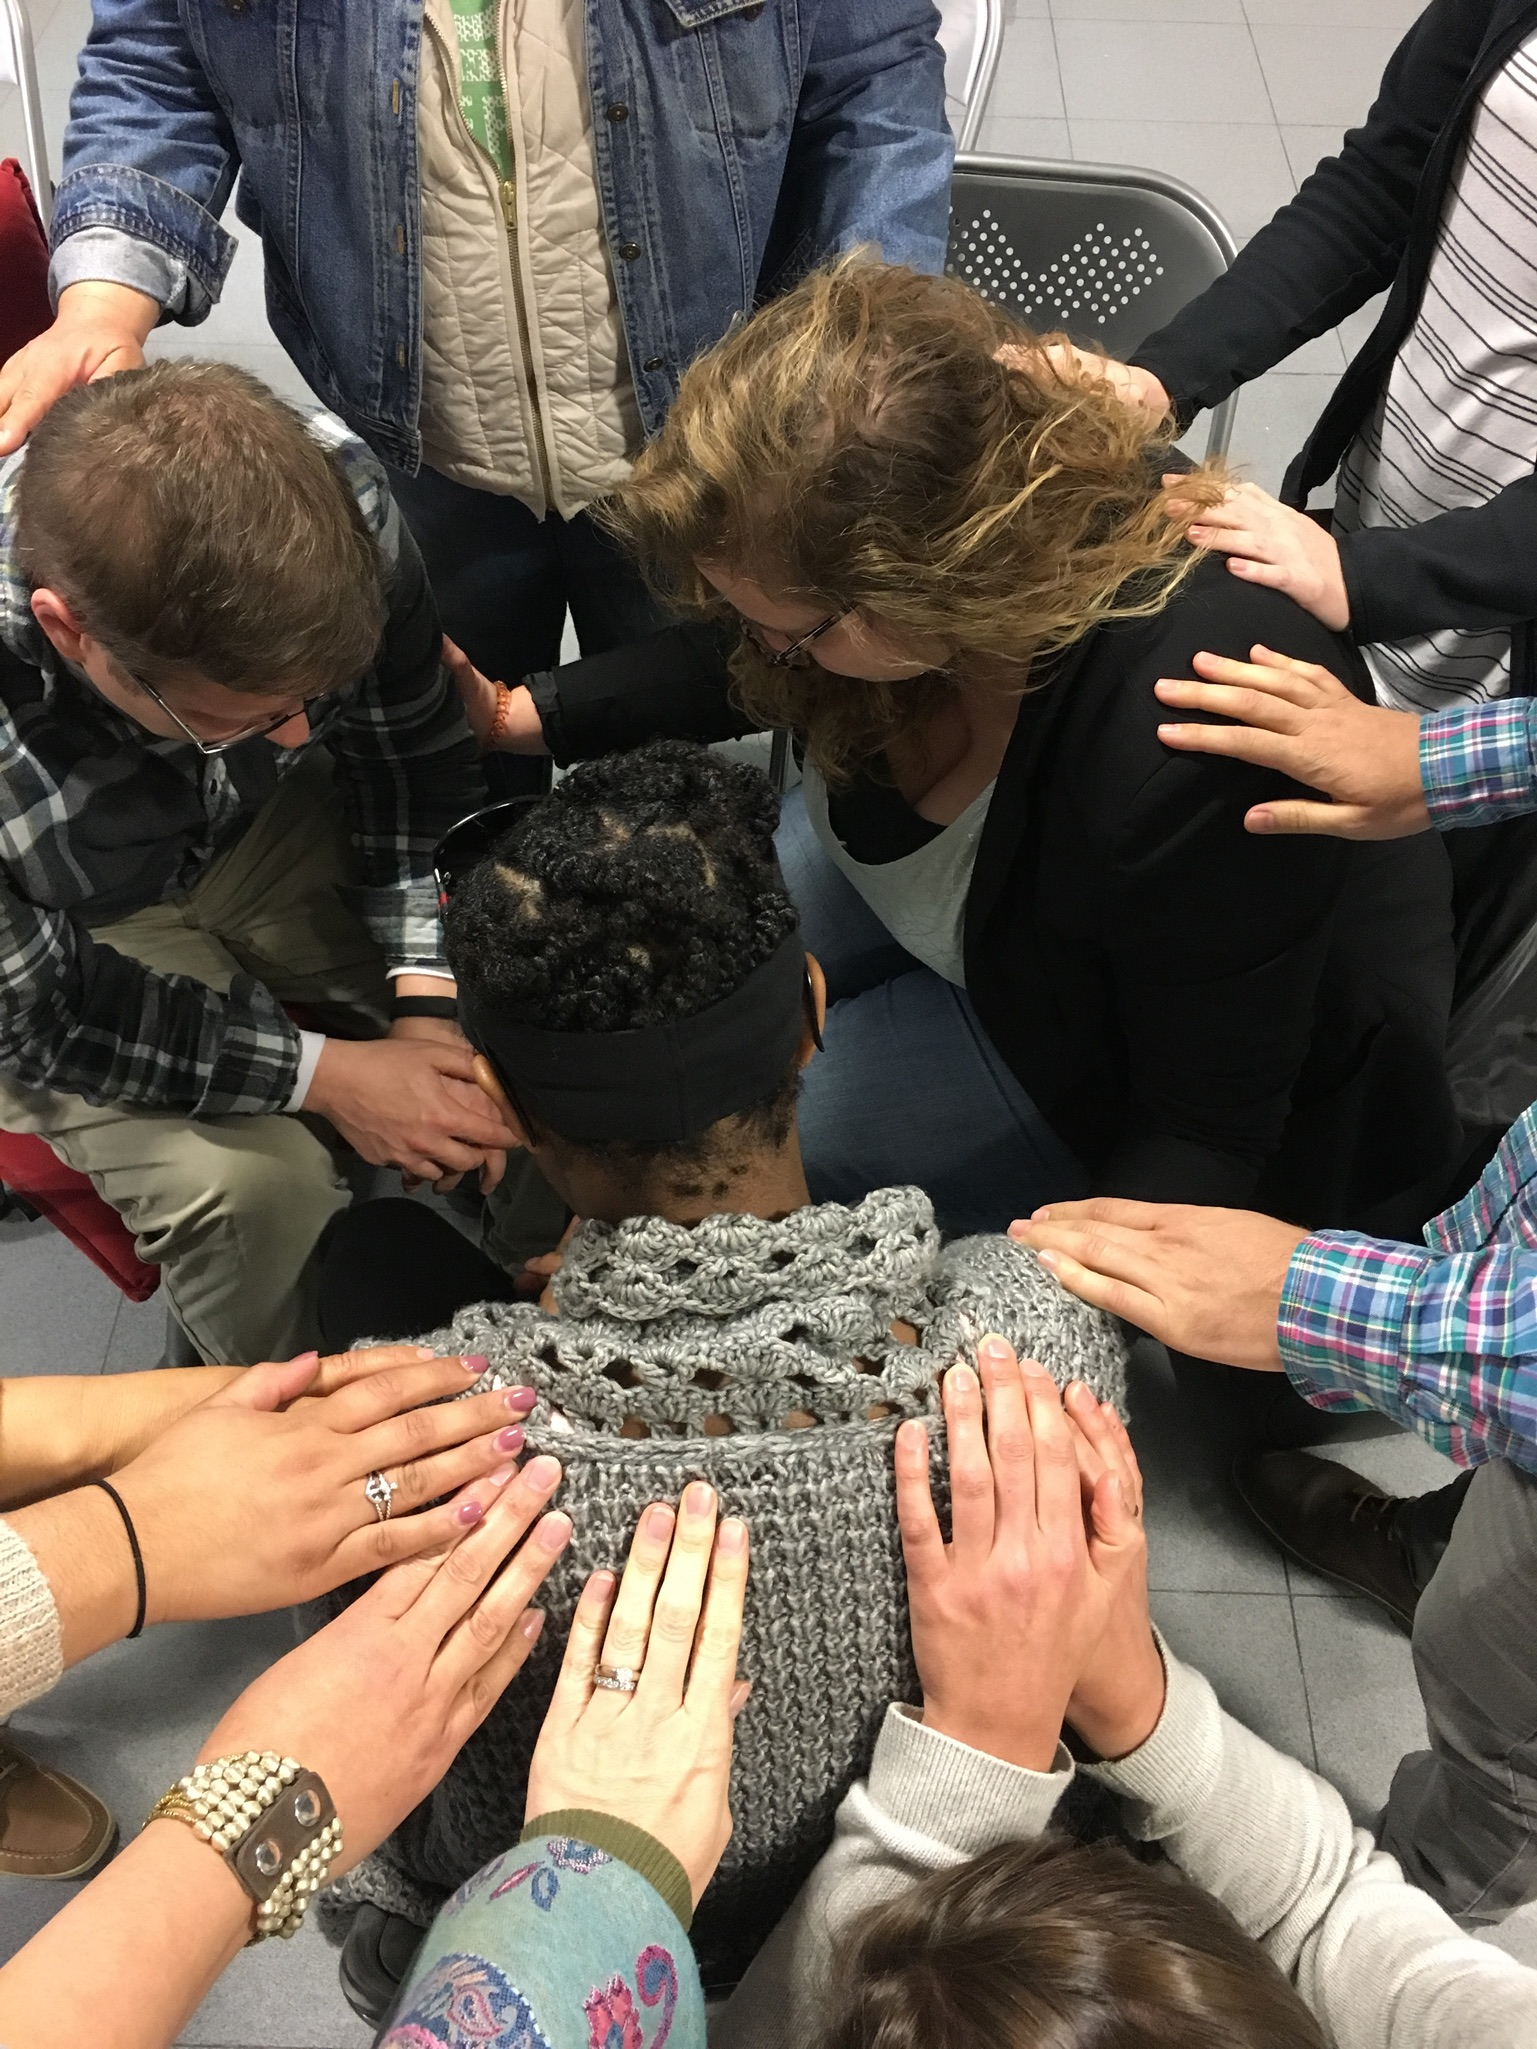 The team praying for the Parnells and Raquel, one of their leaders, on their last night in Spain.